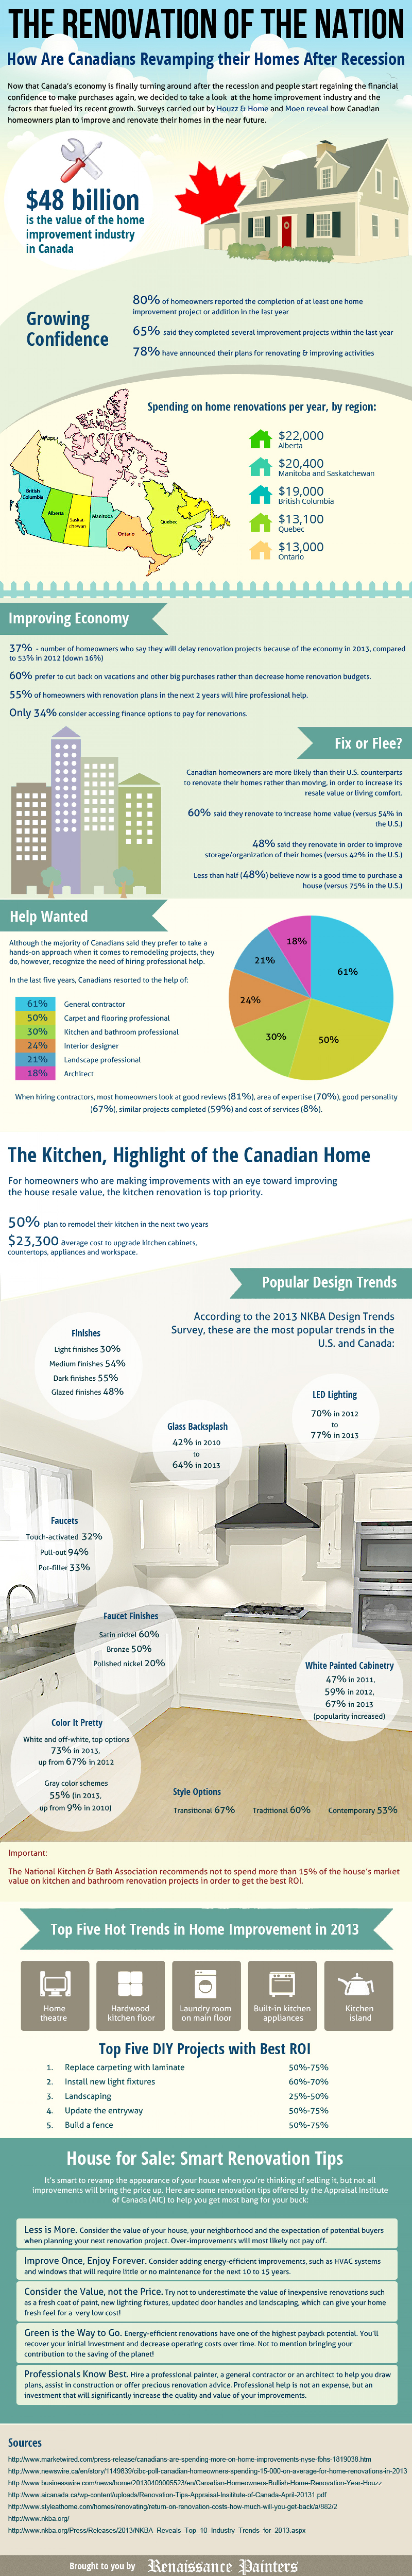 The Renovation of the Nation Infographic